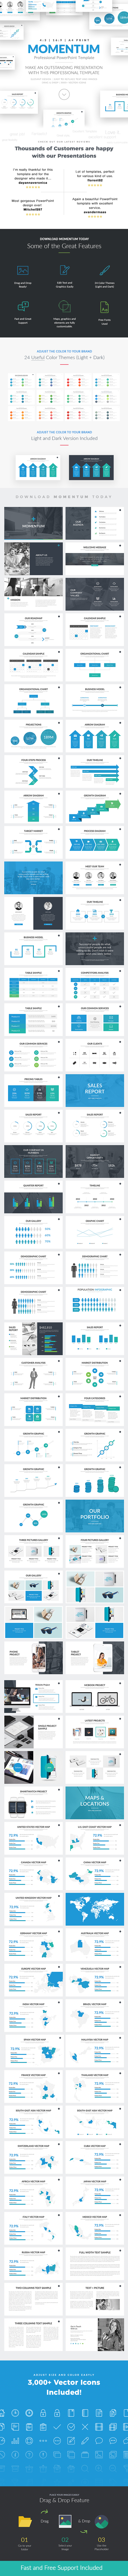 Momentum professional business powerpoint template by louistwelve design momentum professional business powerpoint template powerpoint templates presentation templates flashek Gallery